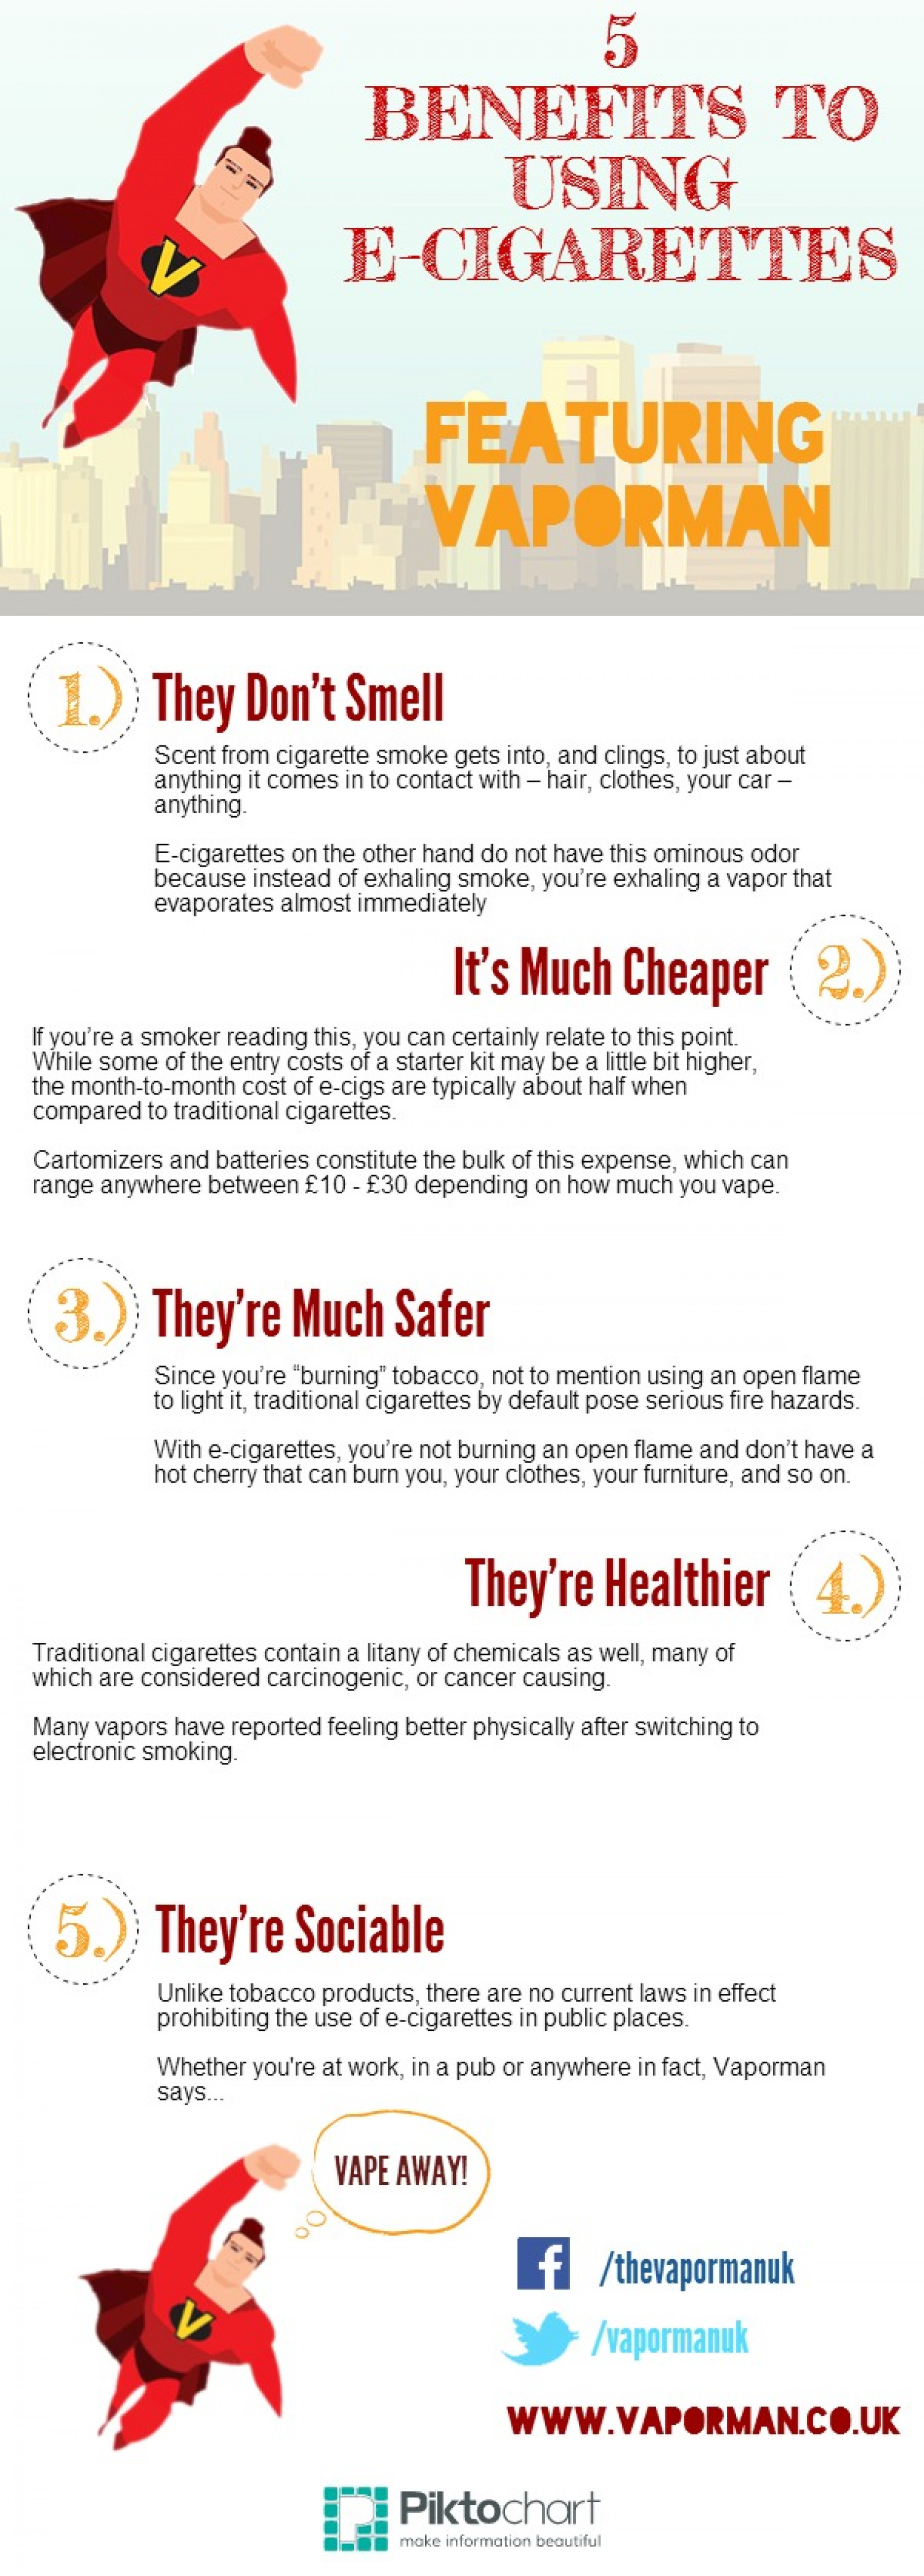 5 Benefits to using E-Cigarettes Infographic